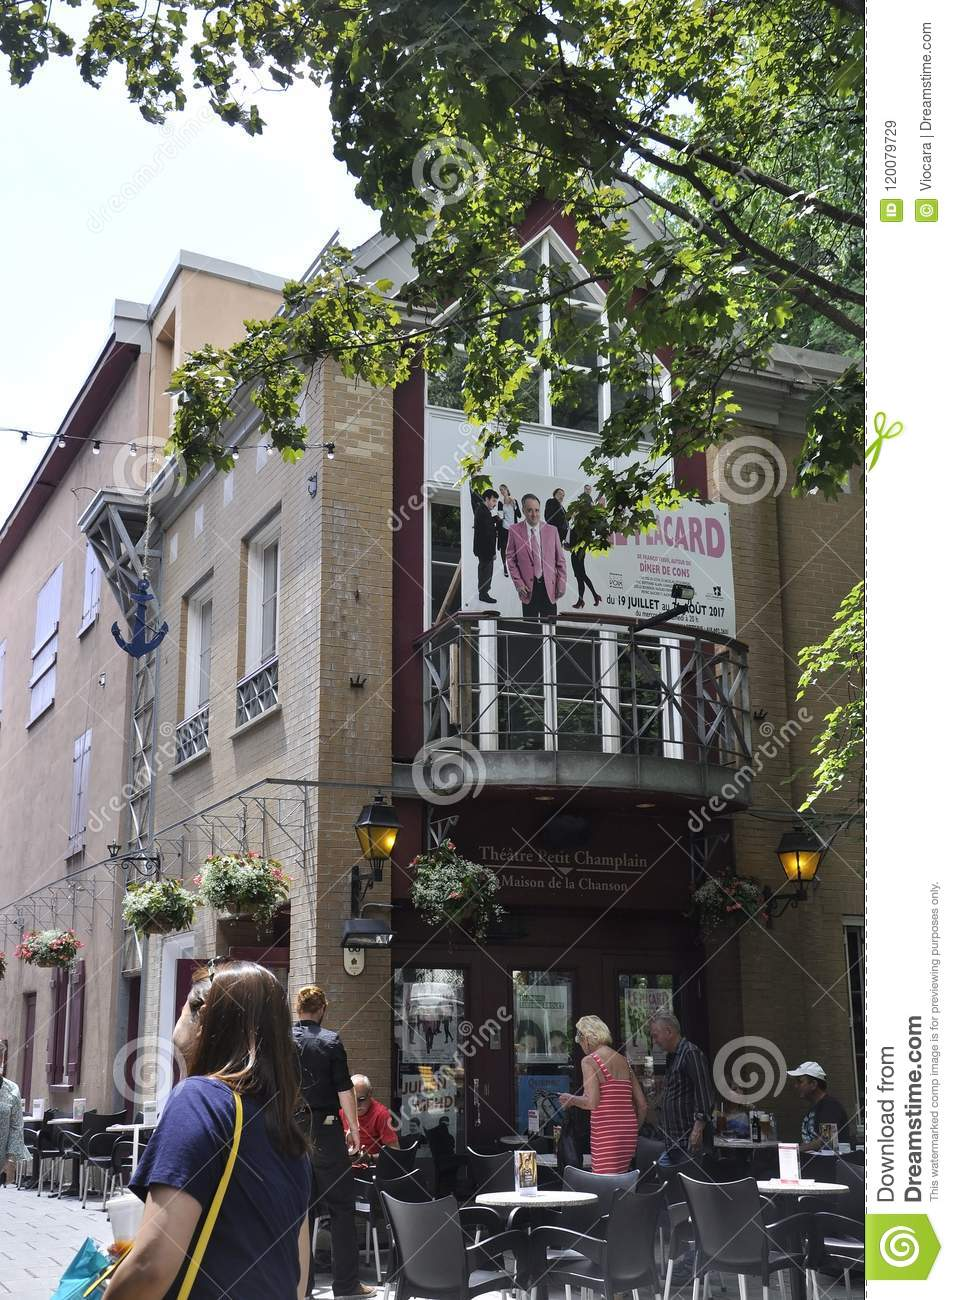 Theatre Maison De La Chanson From Rue Du Champlain In Old Quebec City The  UNESCO World Heritage Site In Canada On 28th June 2017